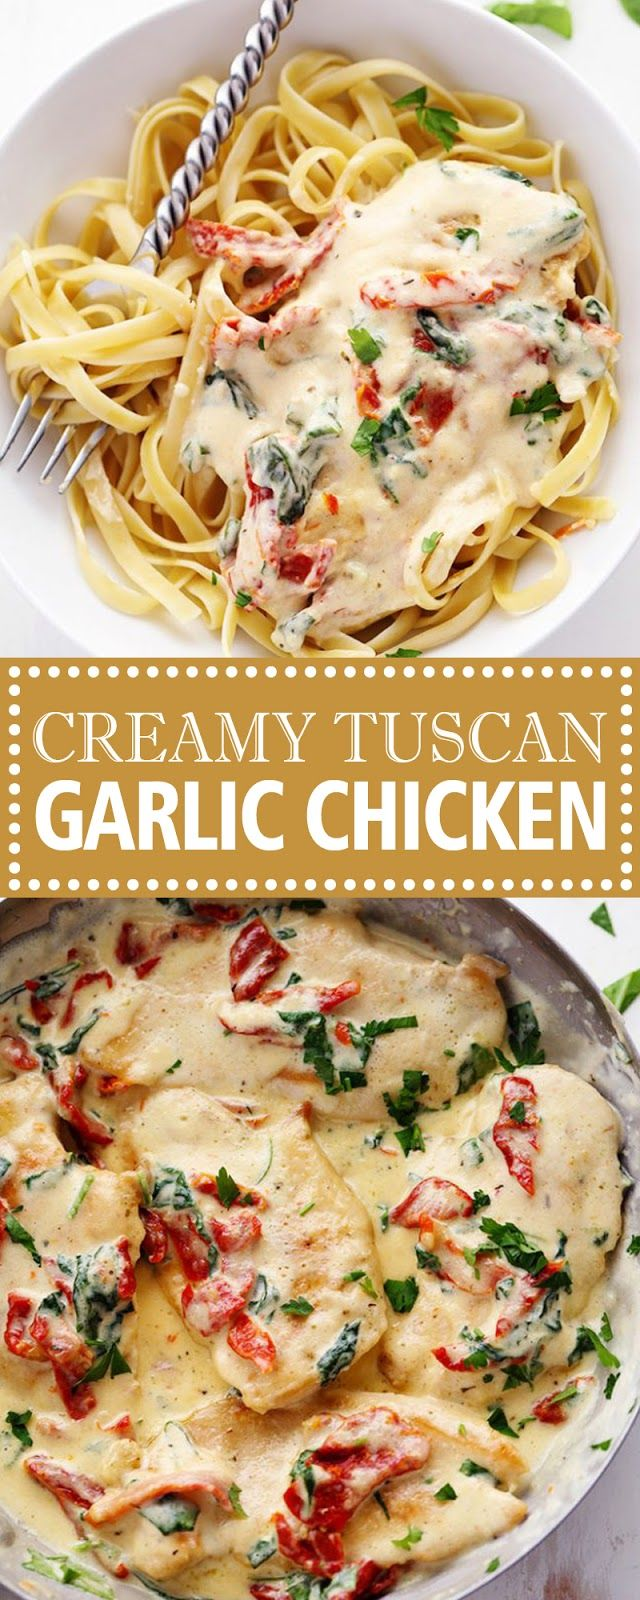 CREAMY TUSCAN GARLIC CHICKEN #creamygarlicchicken